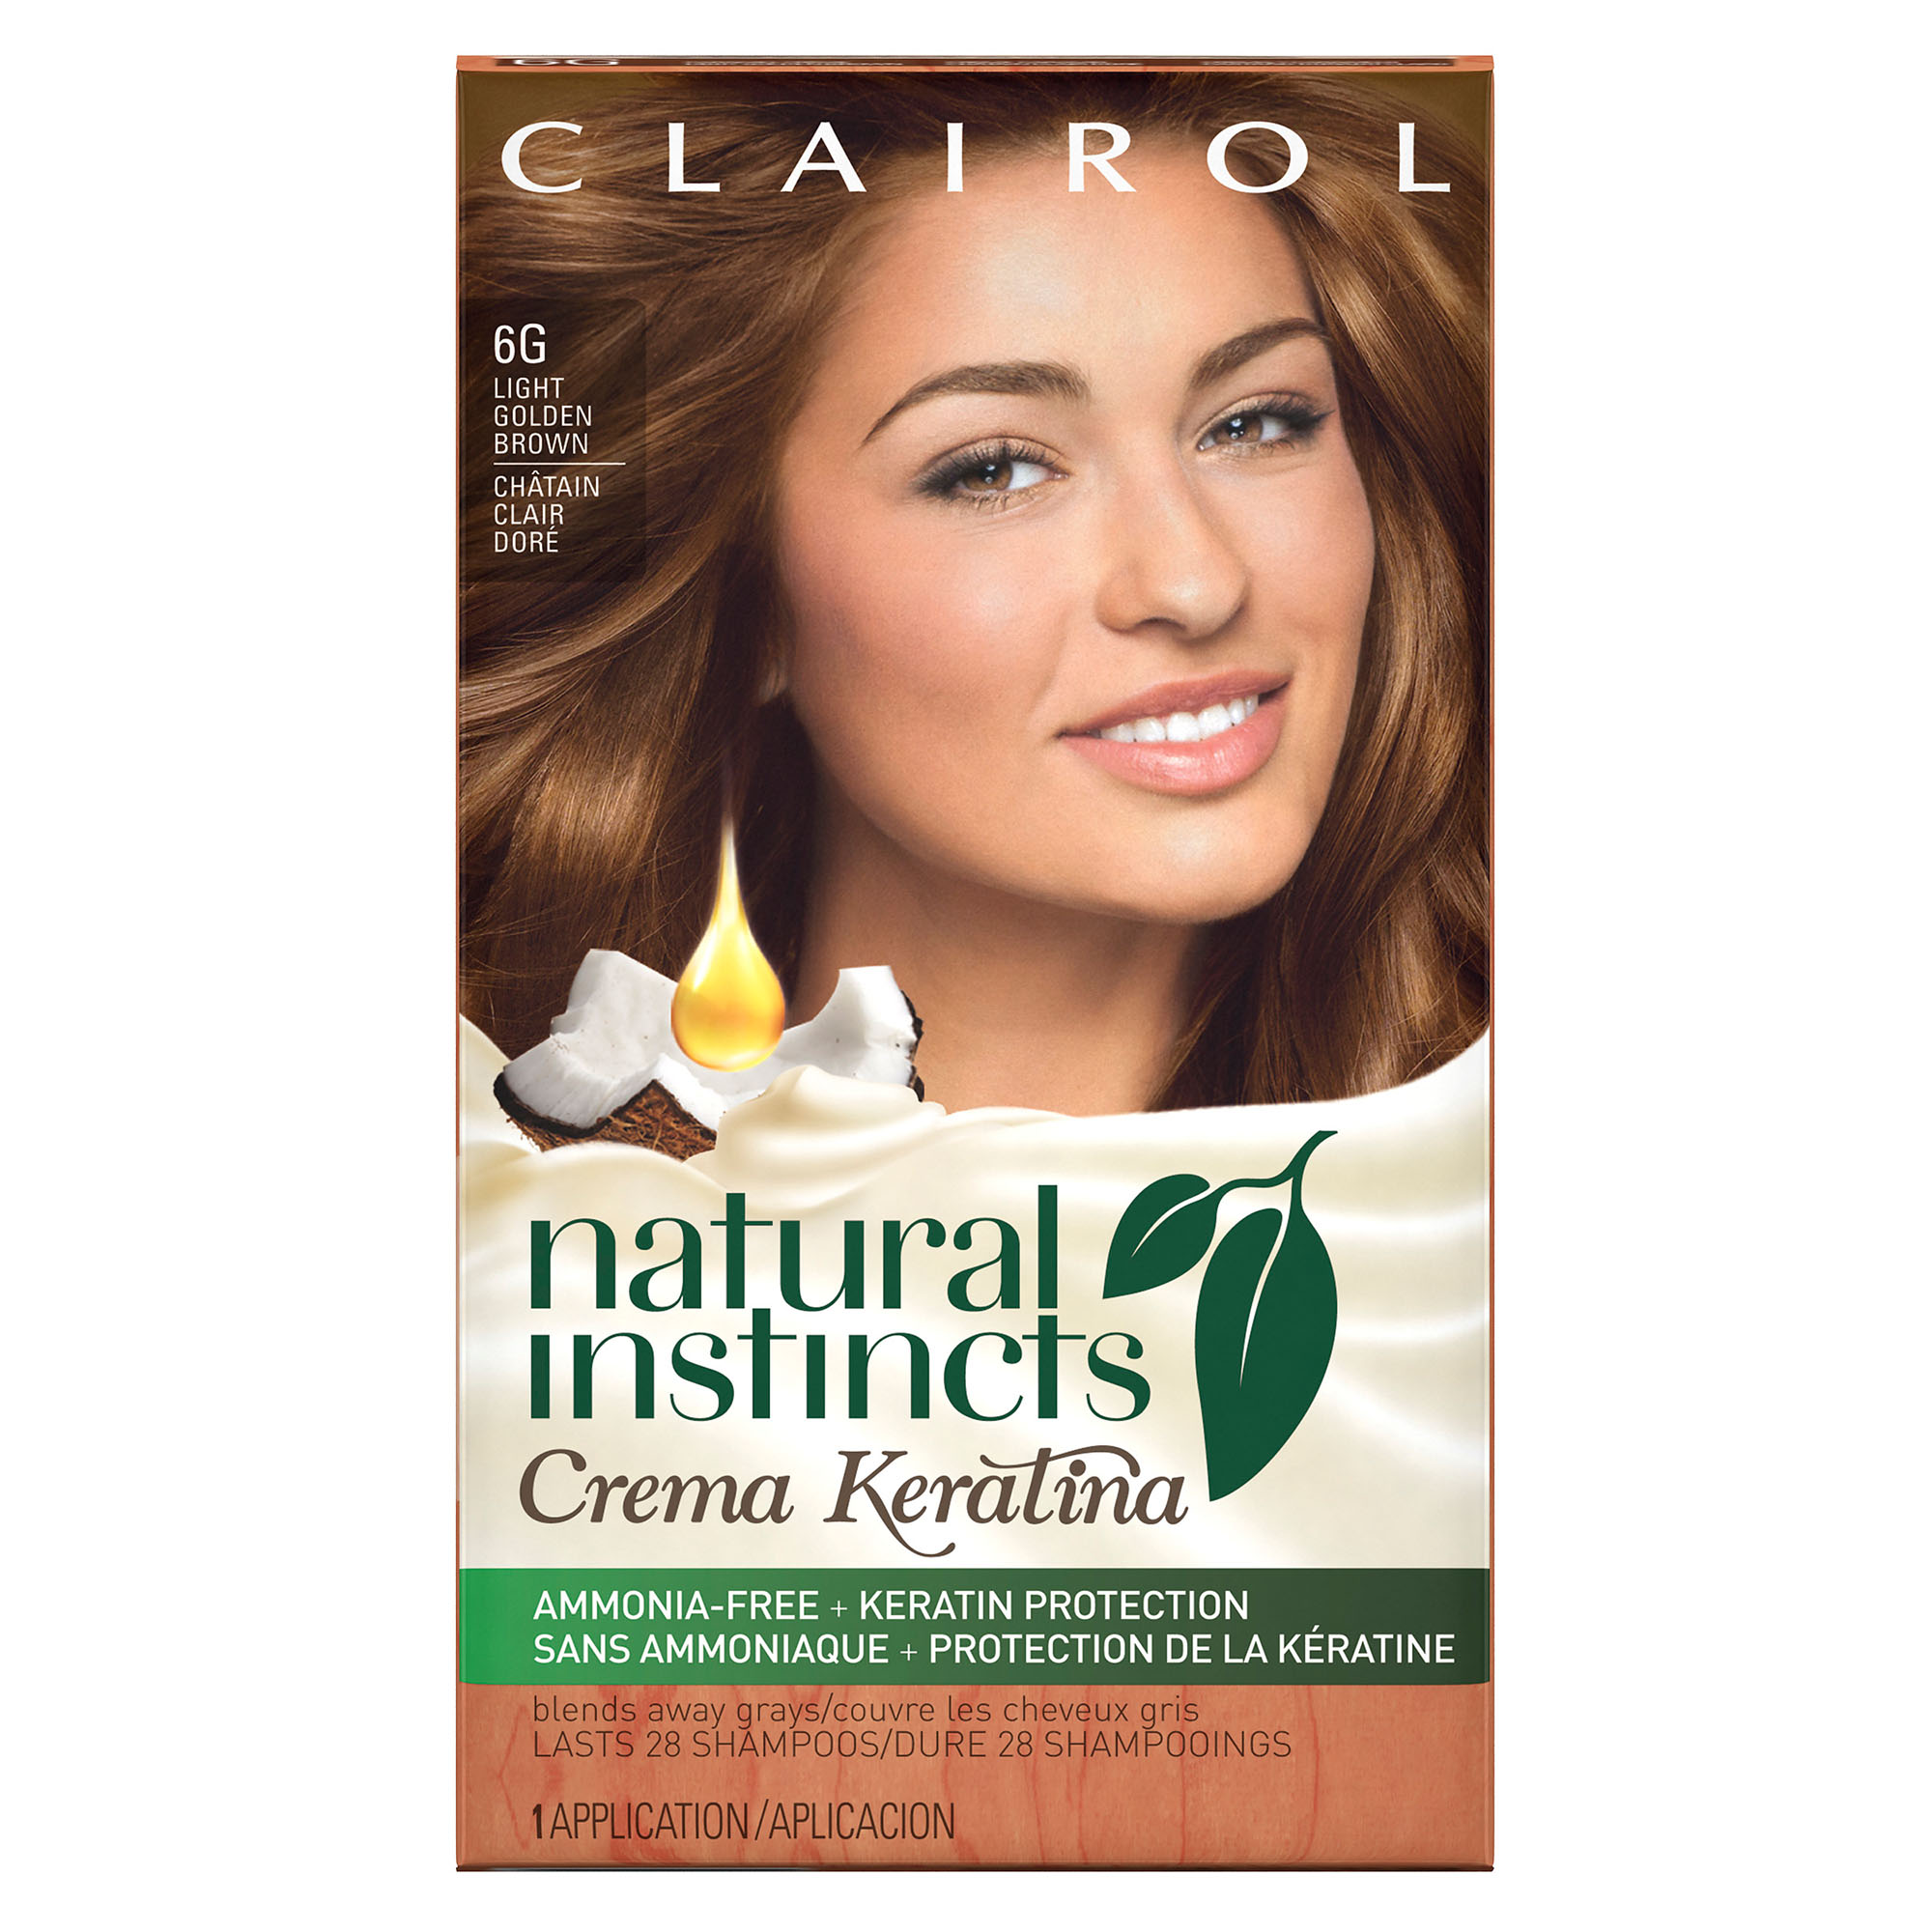 Clairol Natural Instincts Crema Keratina Hair Color, 6G Light Golden Brown/ Caramel Crème